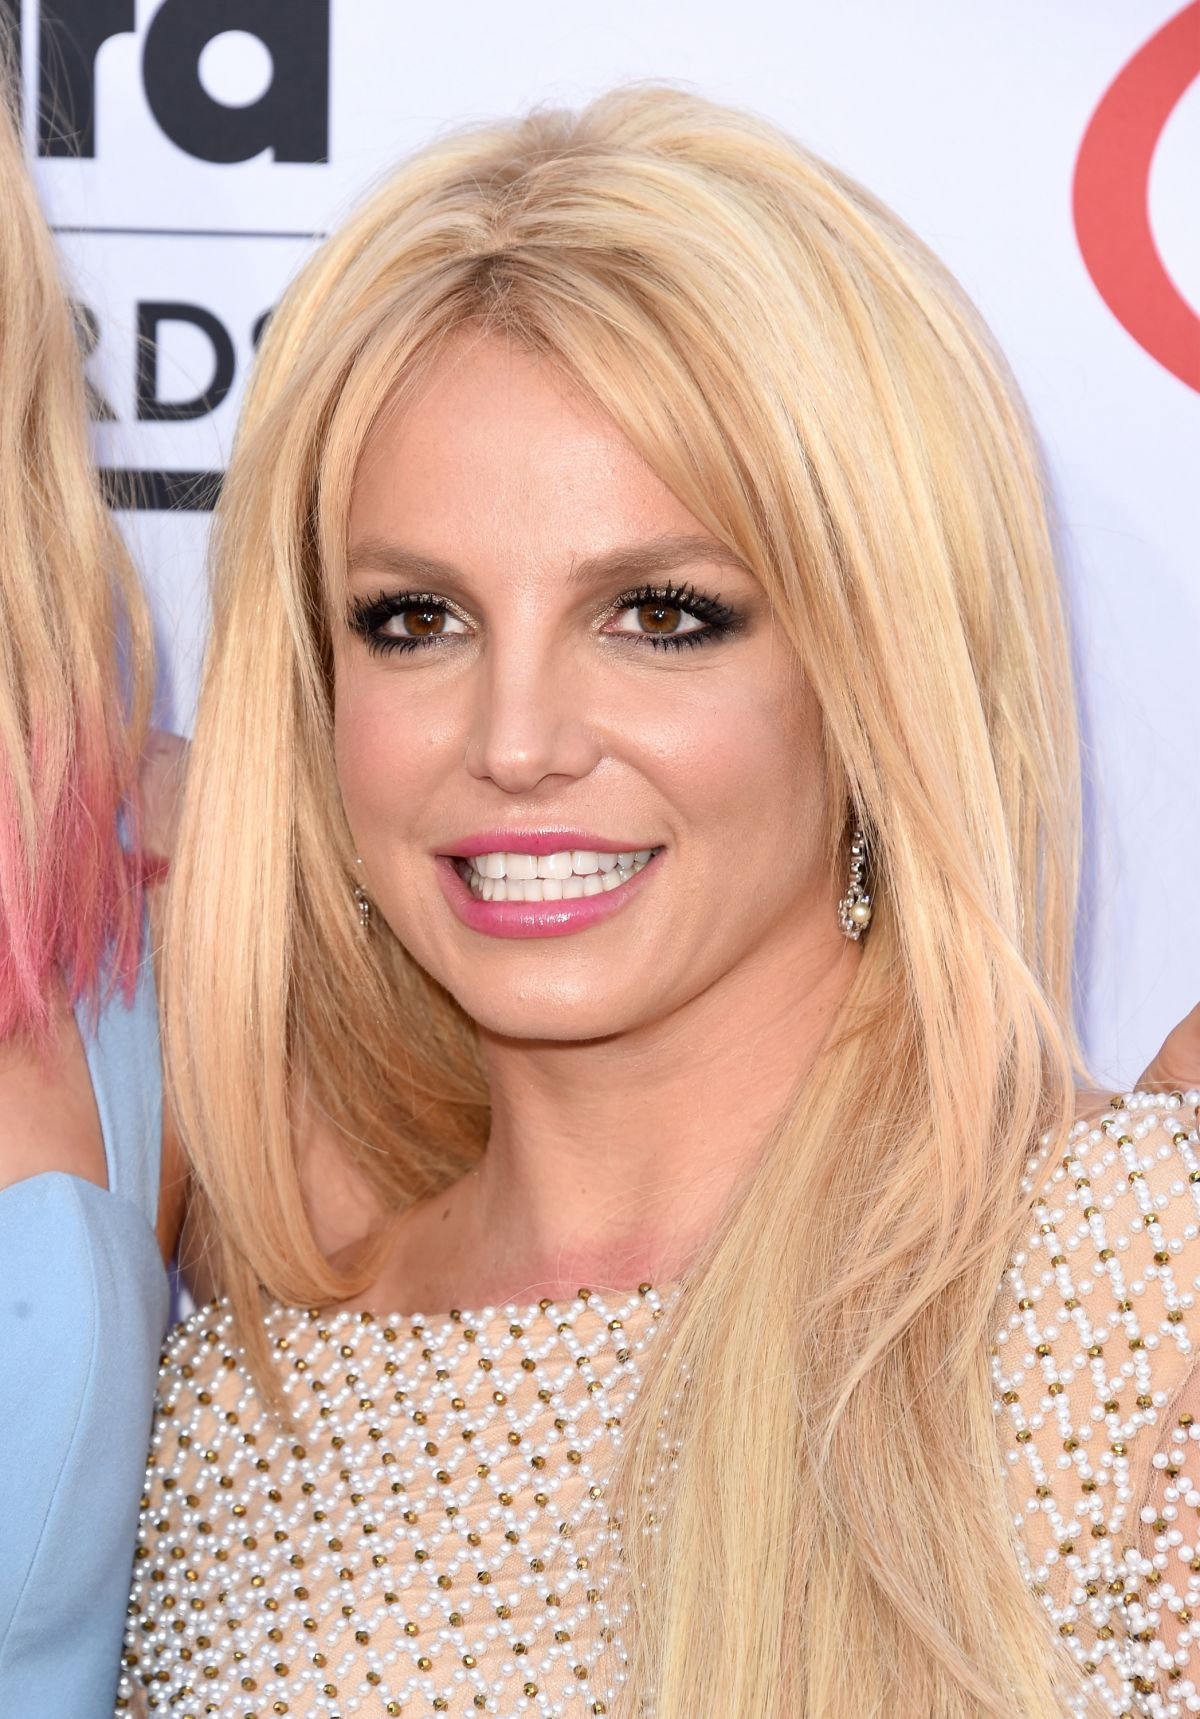 What's behind Britney's smile? - Britney Spears Forum ...